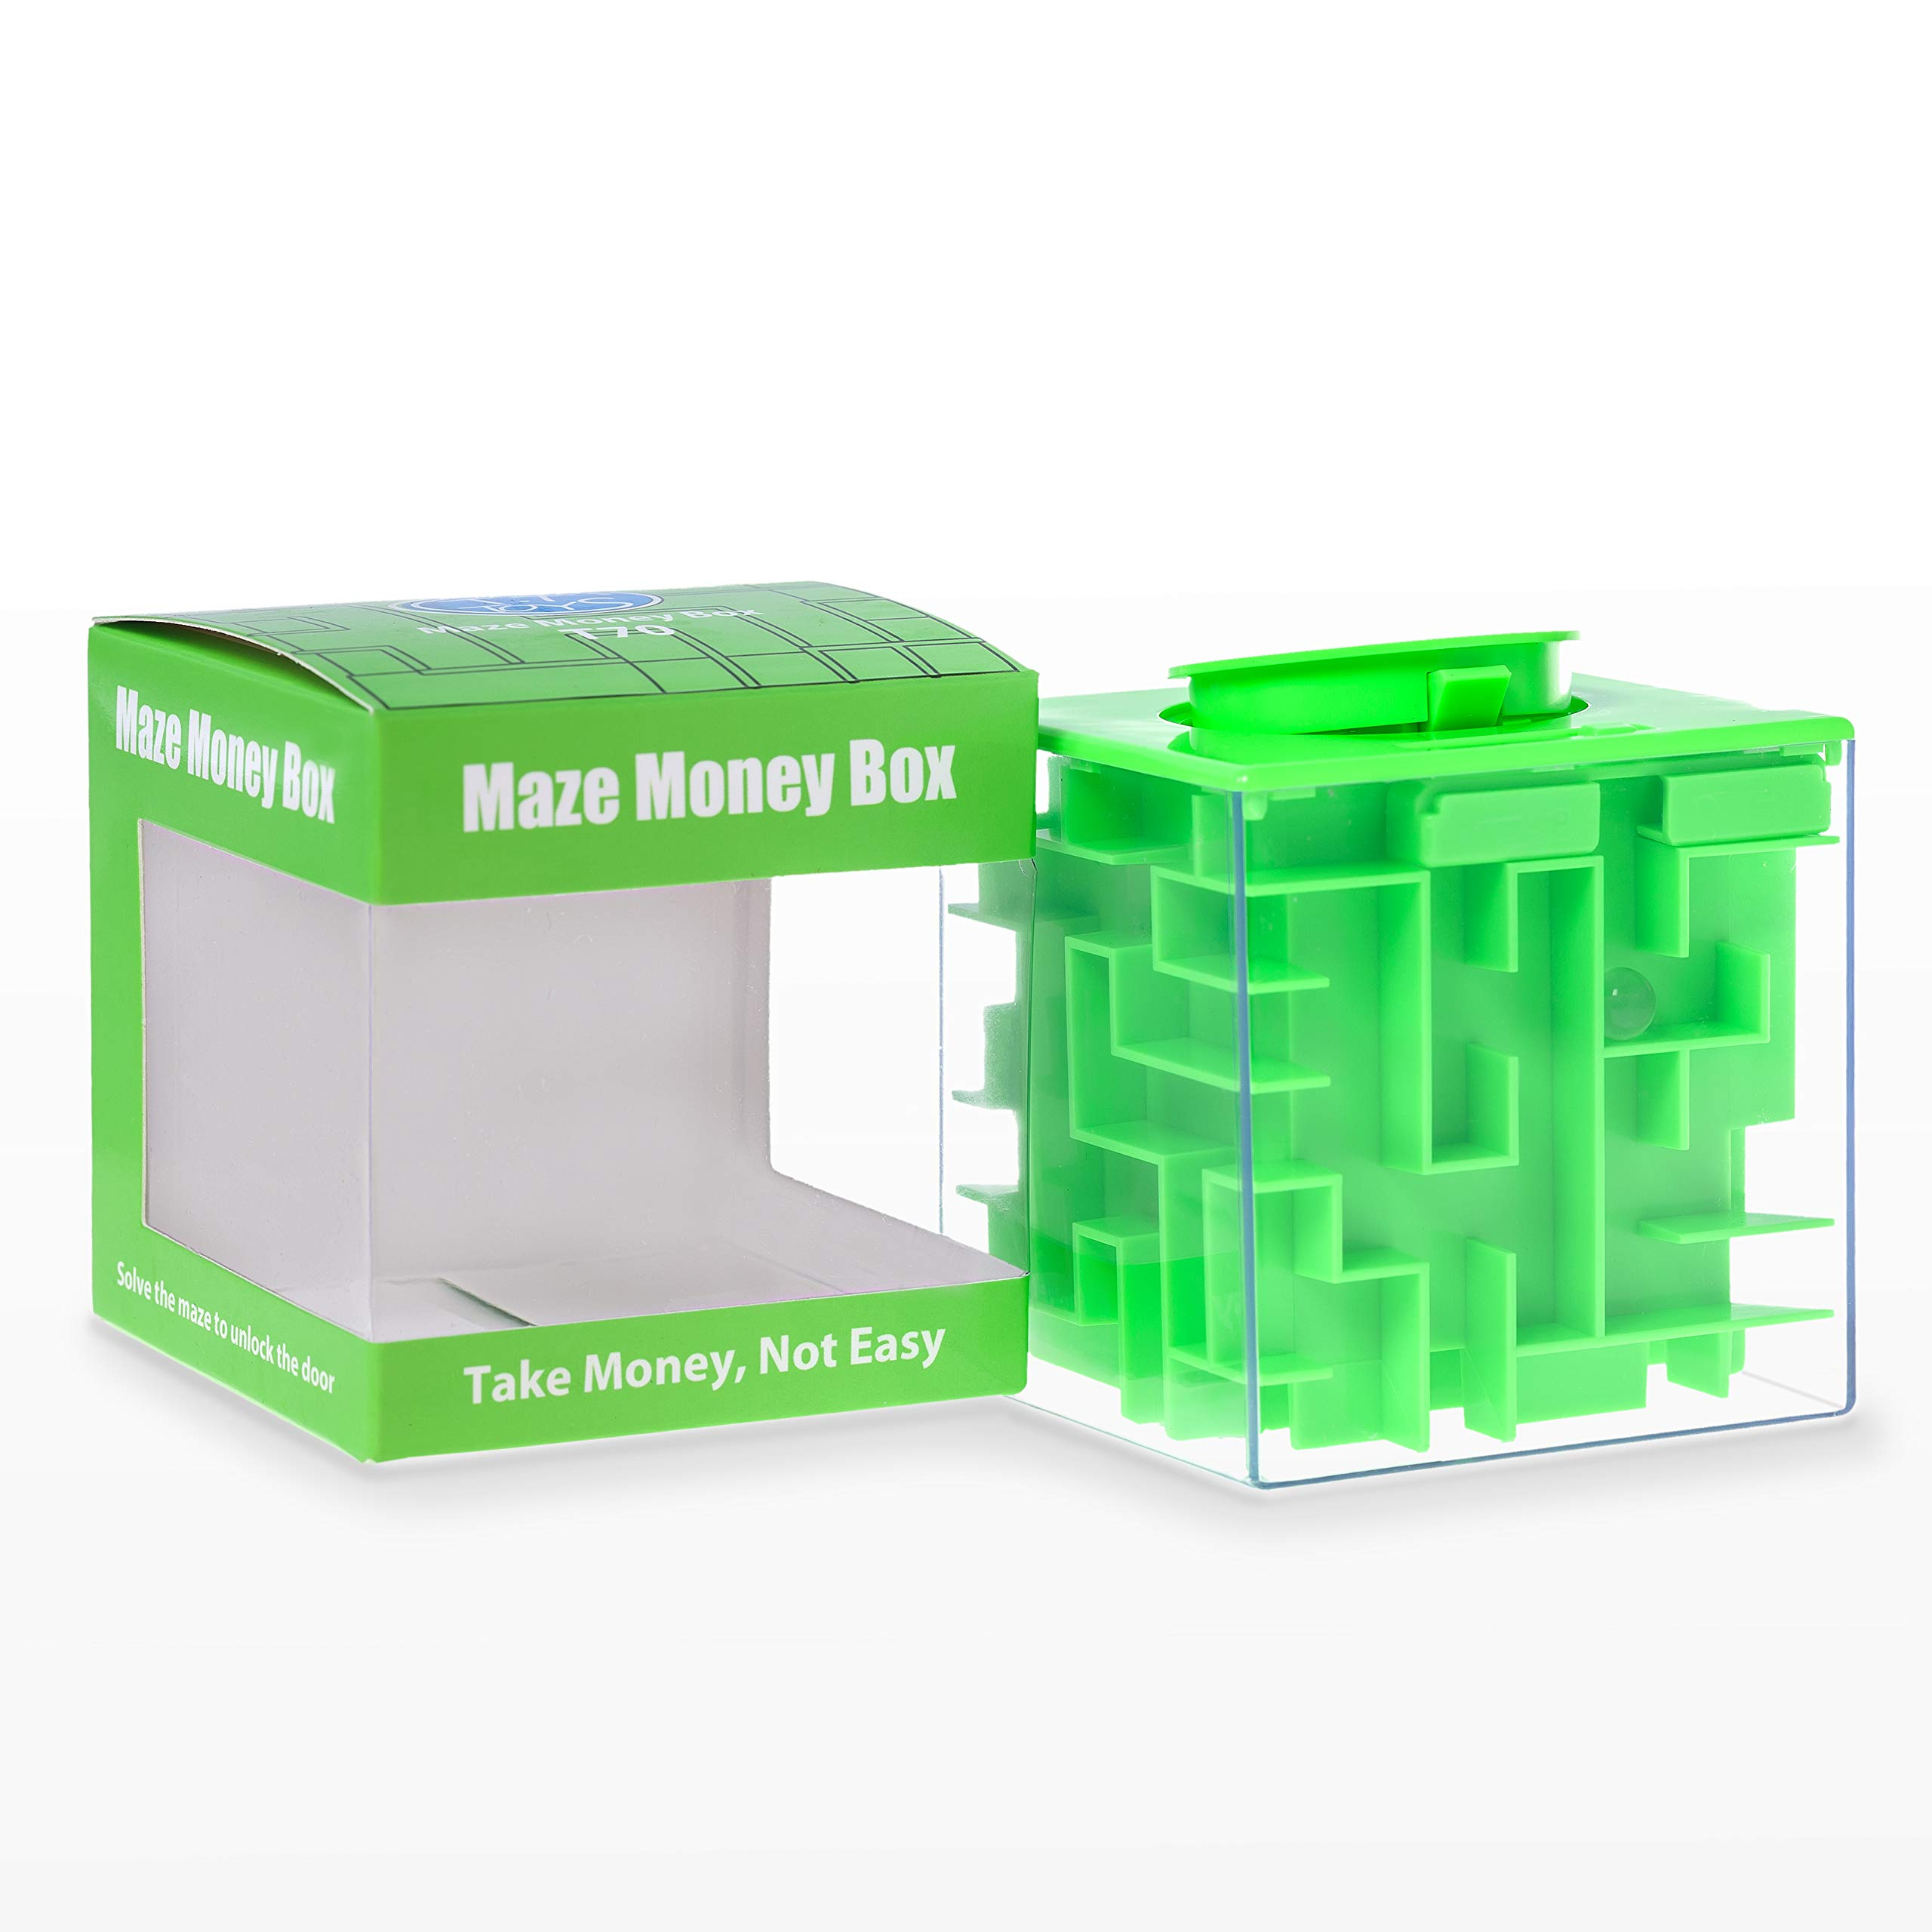 Elfesto Money Maze Puzzle Box: 3D Maze Money & Credit Card Gift Cube| Piggy Bank Money Holder/Saving Box|Fun, Challenging Game/ Brain Teaser for Kids & Adults|Top Money Gifting Puzzle Cube Box| Green